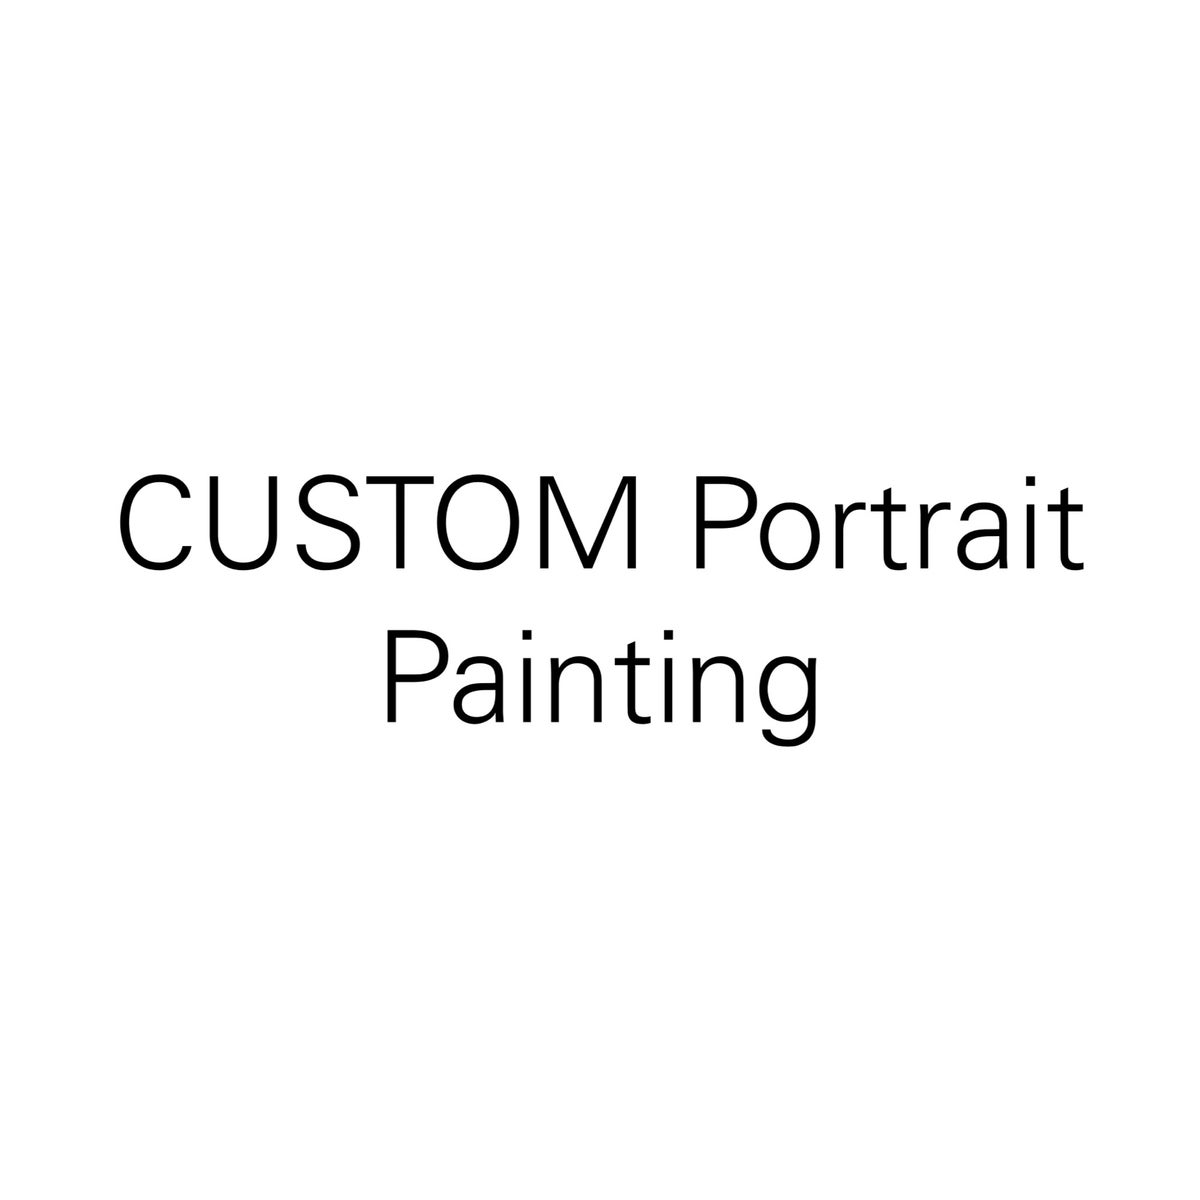 Image of CUSTOM Portrait Painting